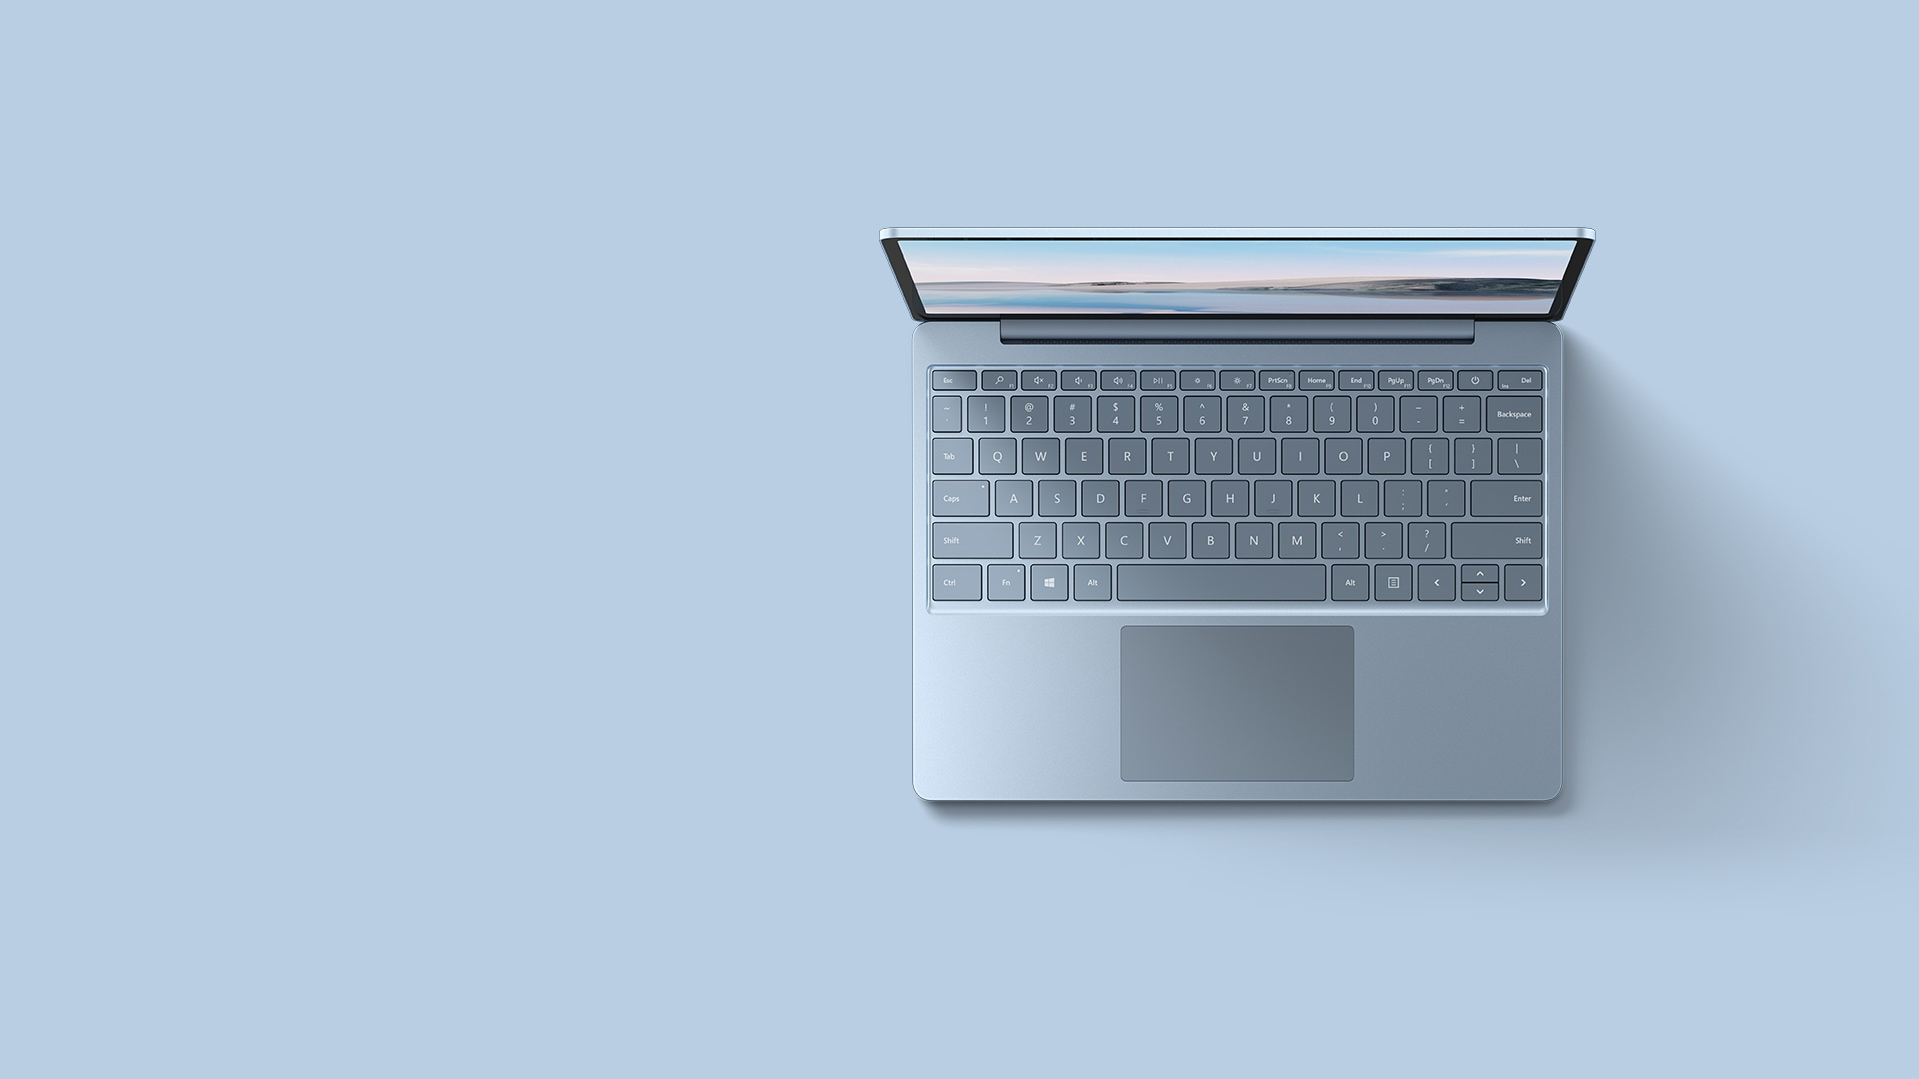 An aerial view of the ice blue Surface Laptop Go resting upon a matching background.